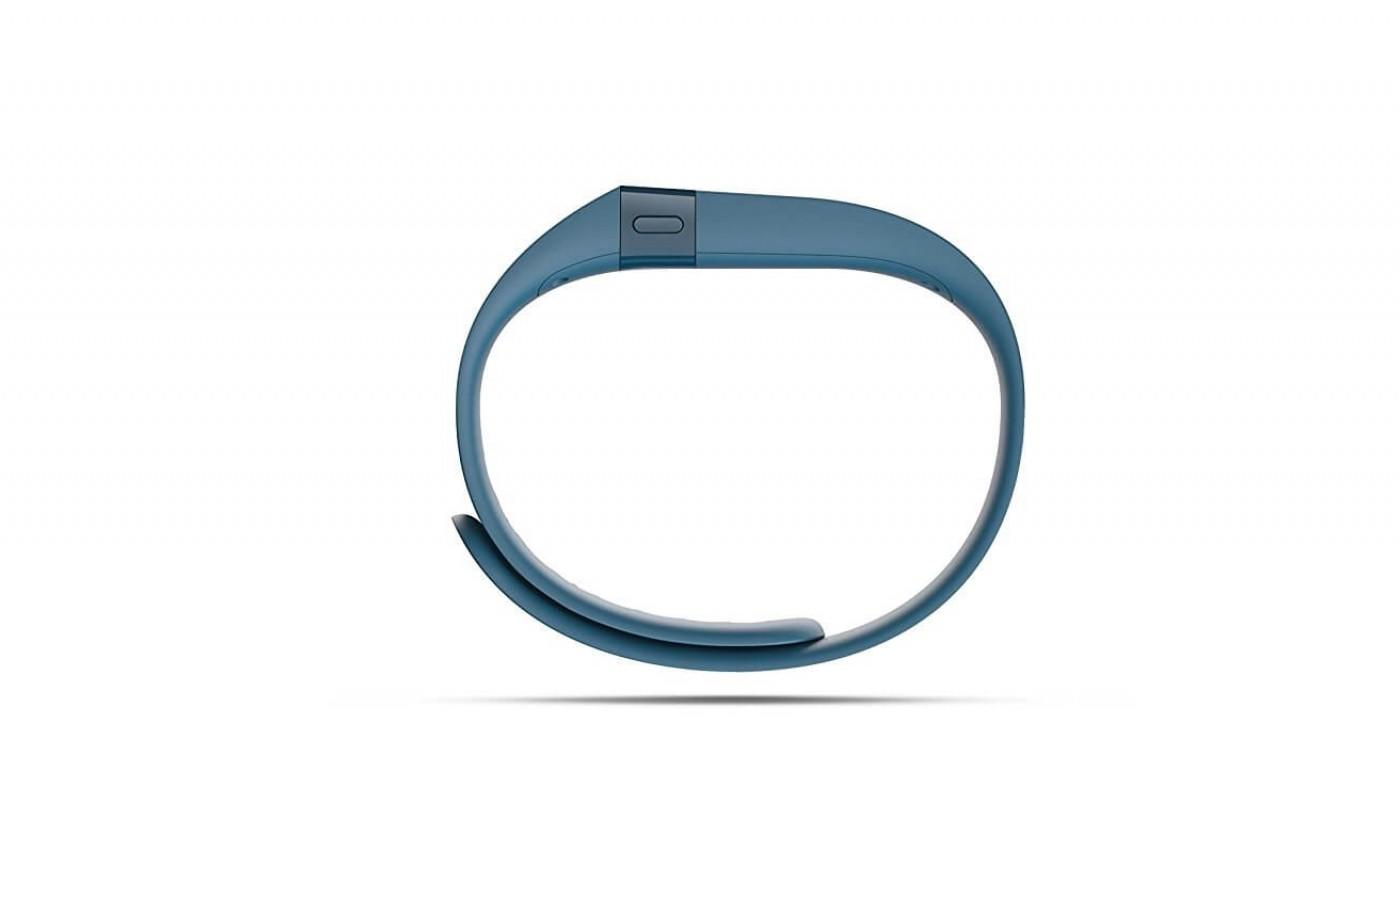 The slim design of the Fitbit Charge